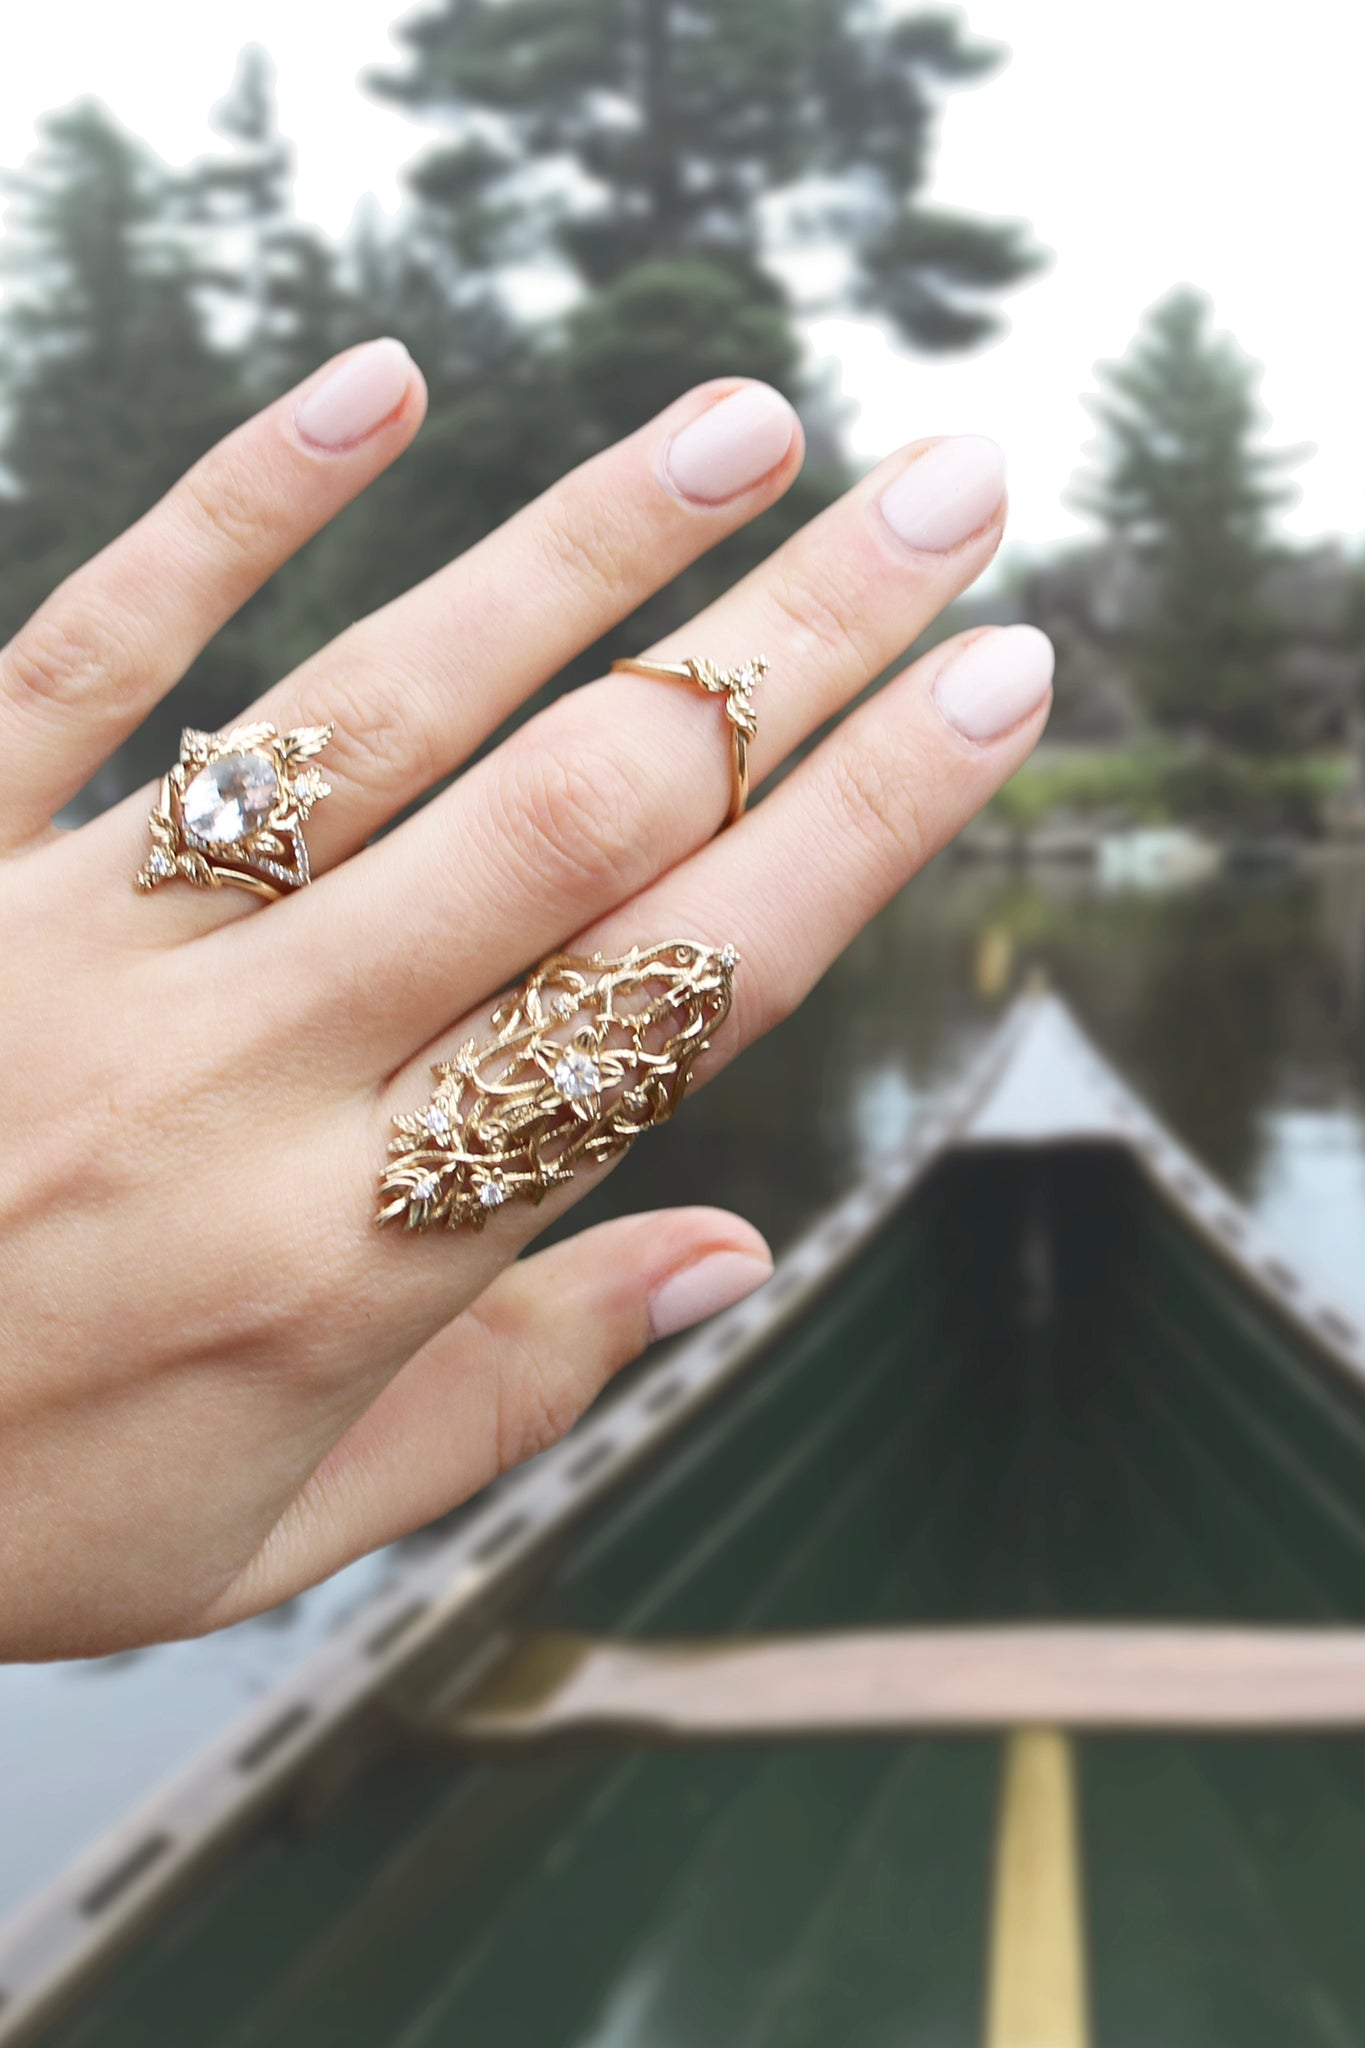 Hearth Jewelry | Unique Jewelry & Nature Inspired Engagement